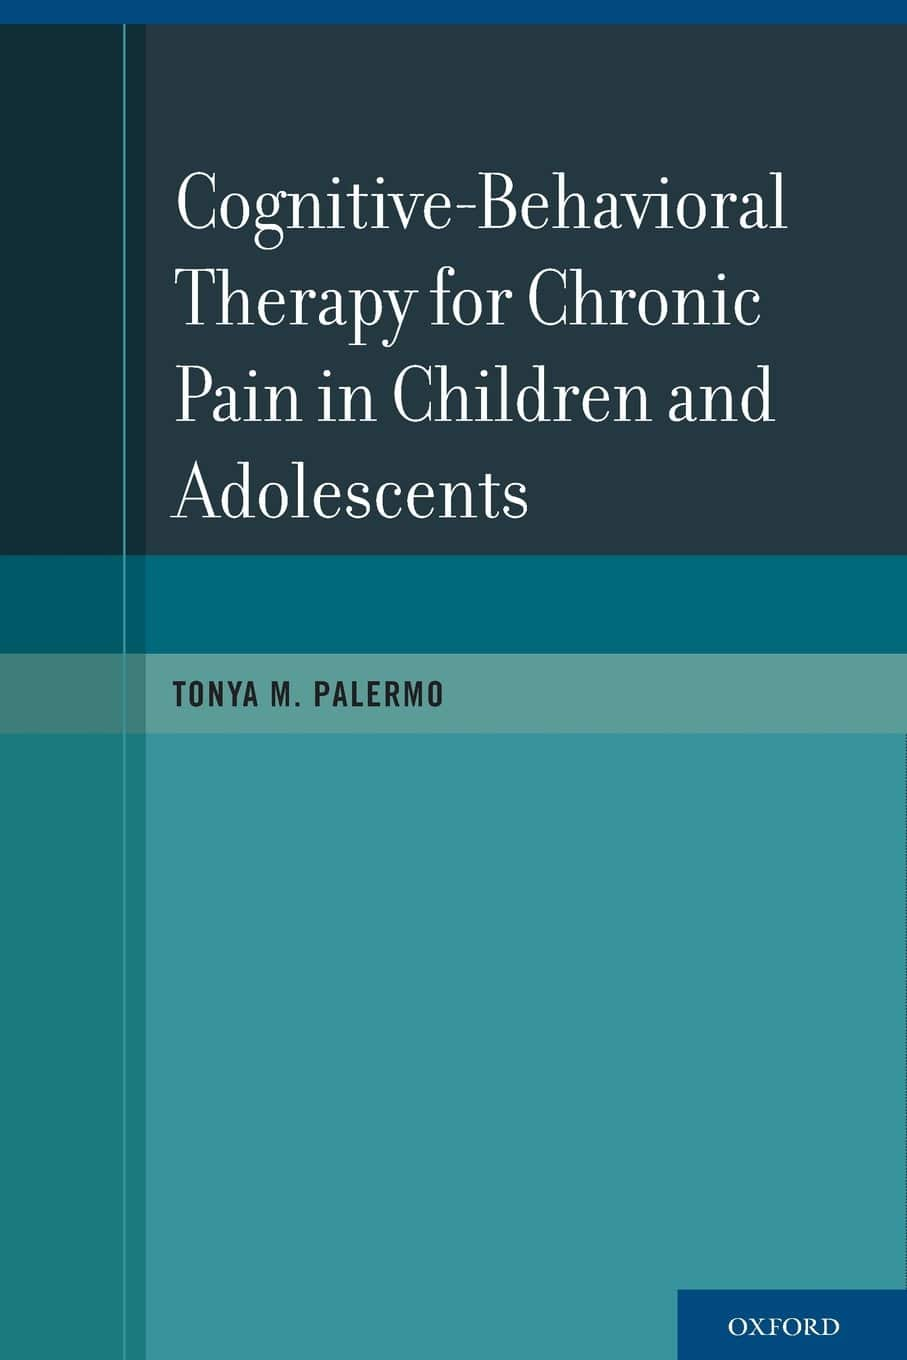 Cognitive Behavioral Therapy For Chronic Pain In Children And Adolescents